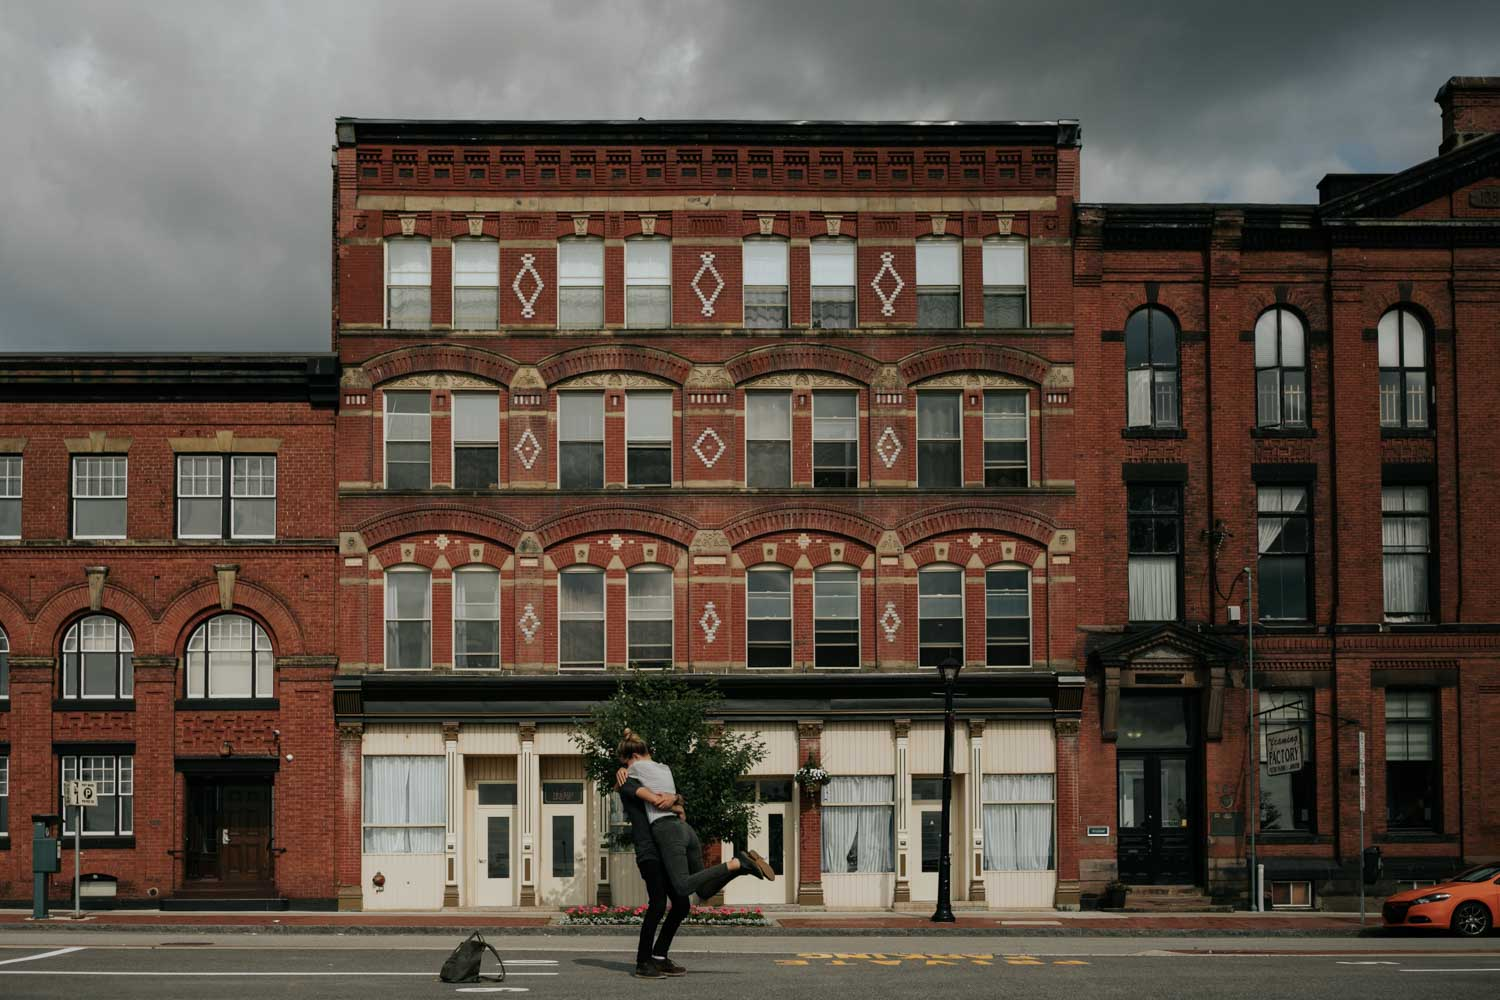 Husband spins wife around on the downtown streets of St John in New Brunswick in front of epic historical buildings